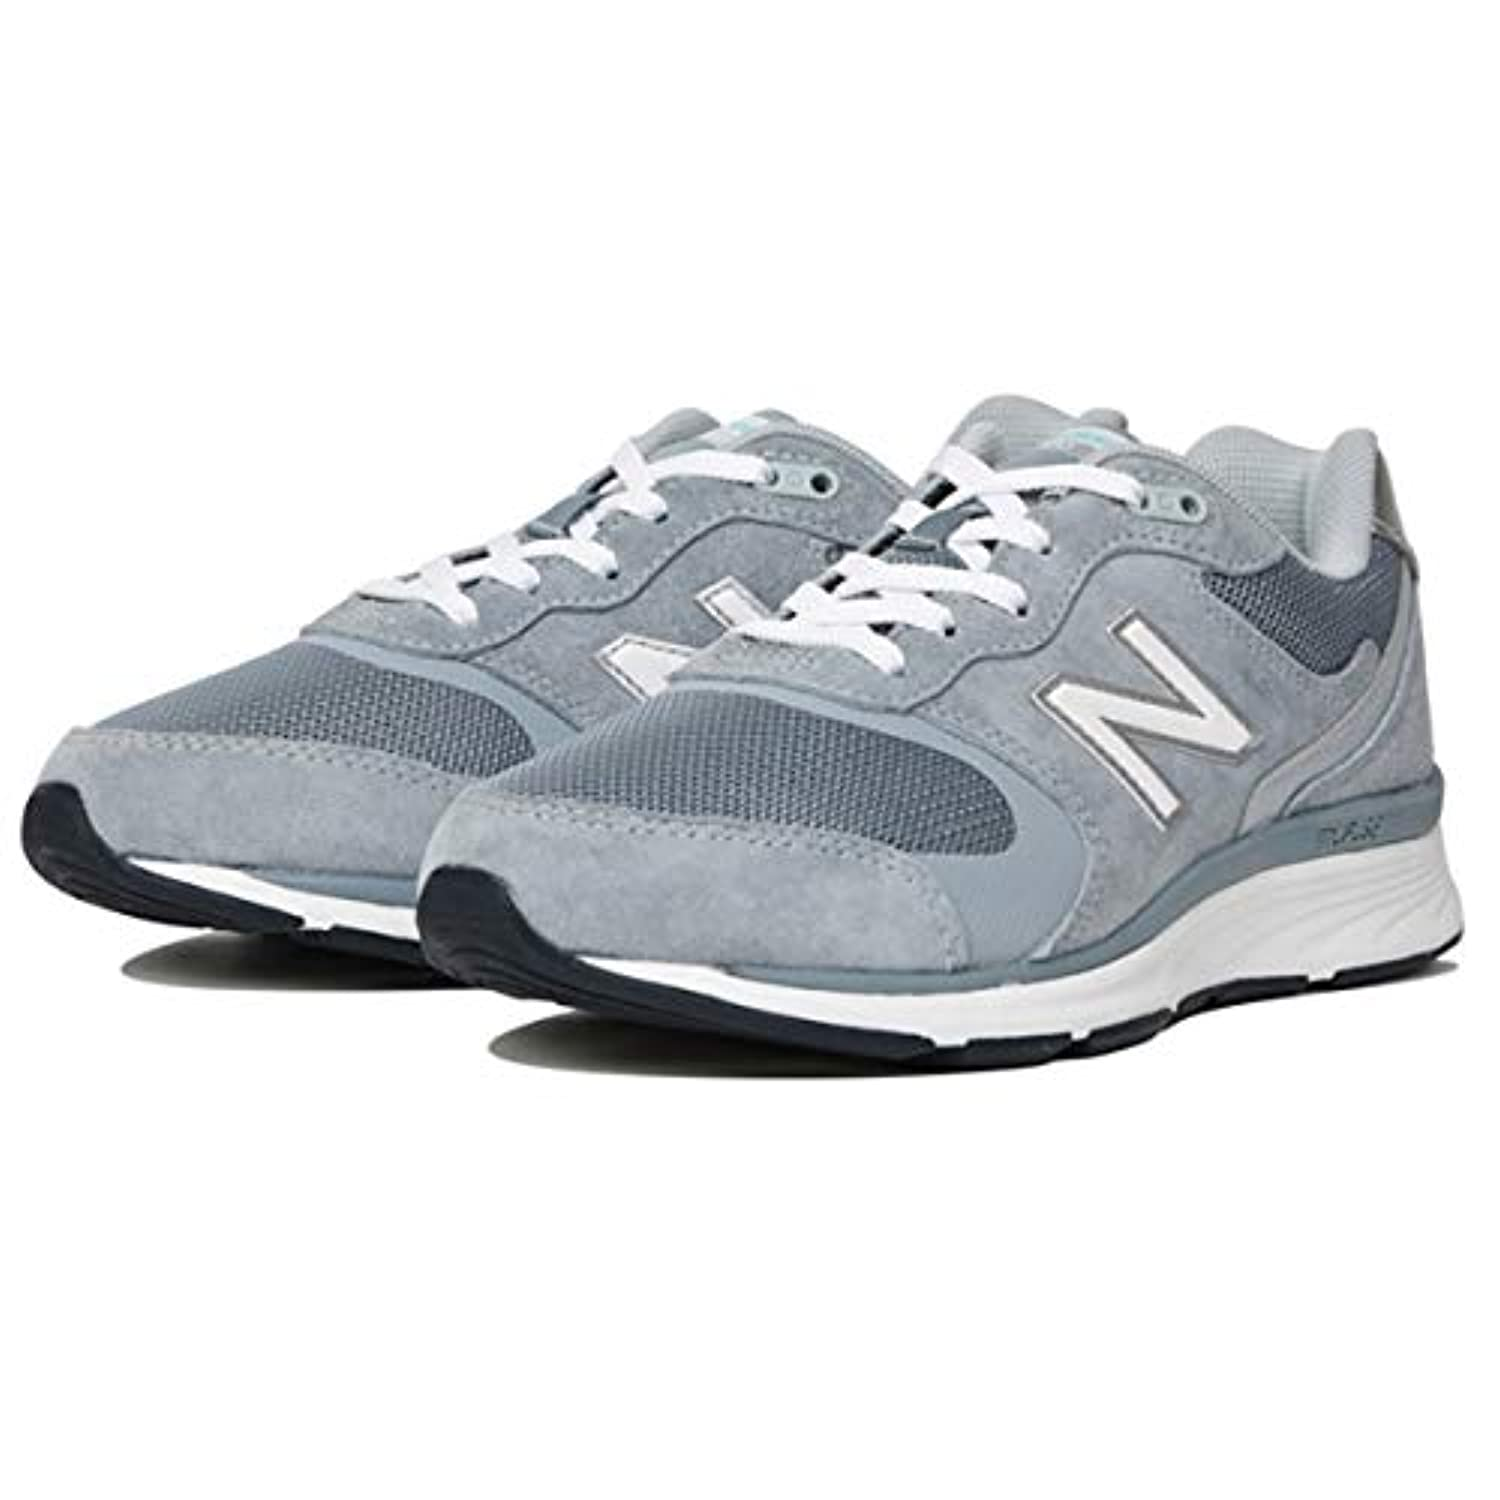 [ニューバランス] newbalance WW880 2E メンズ シューズ WW880-BG4-2E BG4(LIGHT BLUE) 19SS